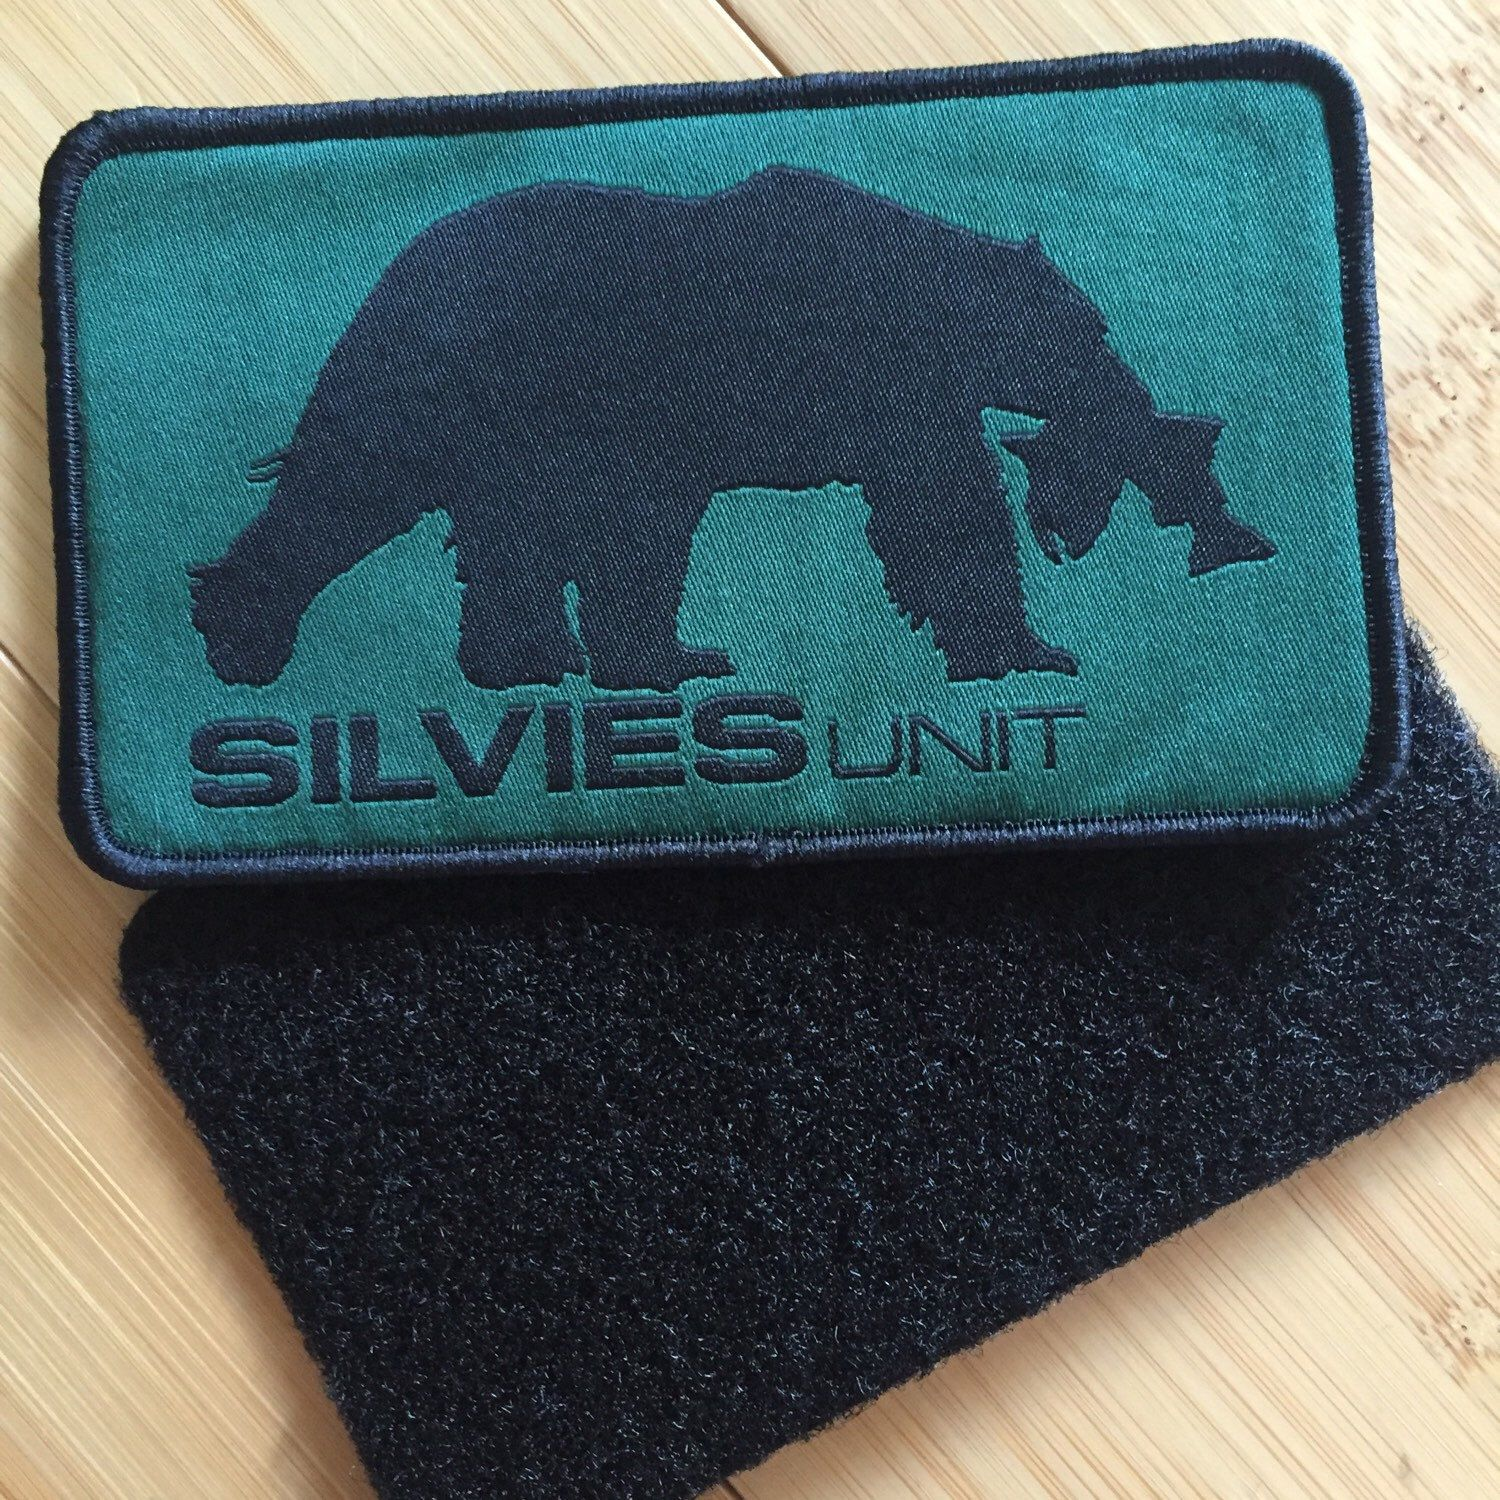 Our new Velcro backed patches!!!